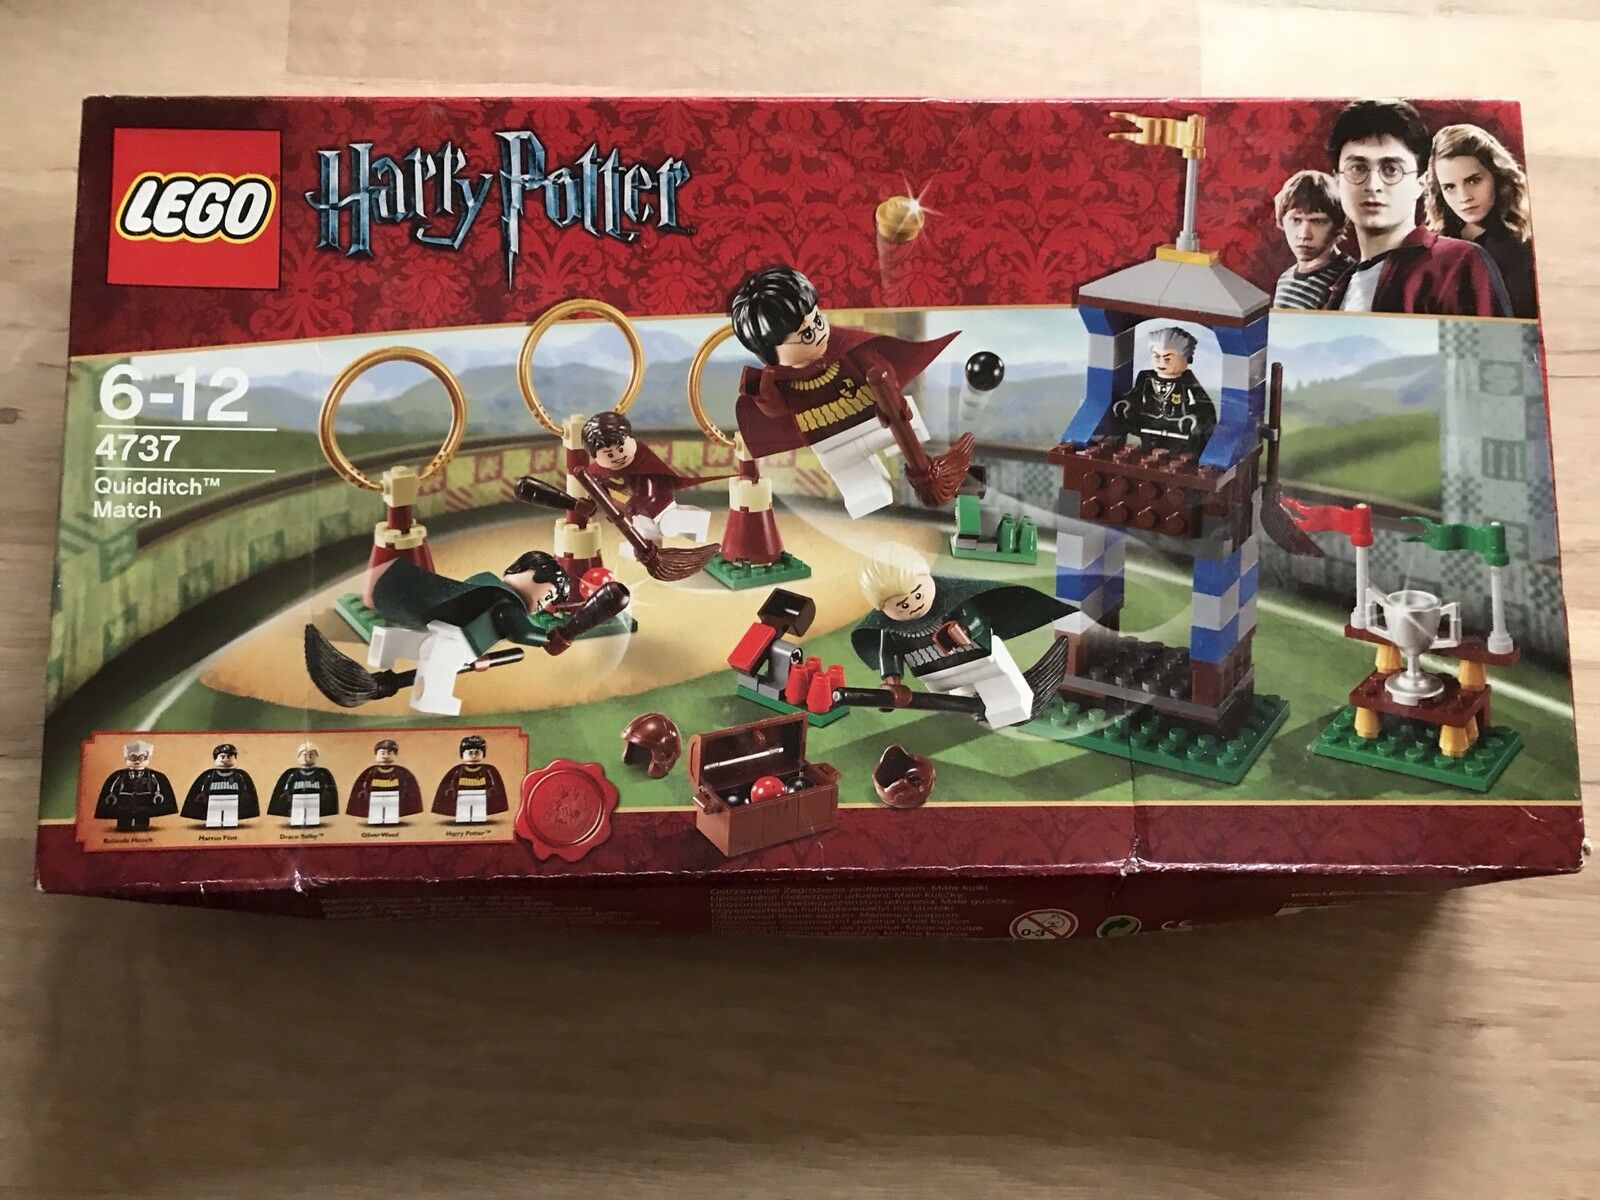 Lego 4737 Harry Potter Quidditch Match Boxed Sealed Brand New